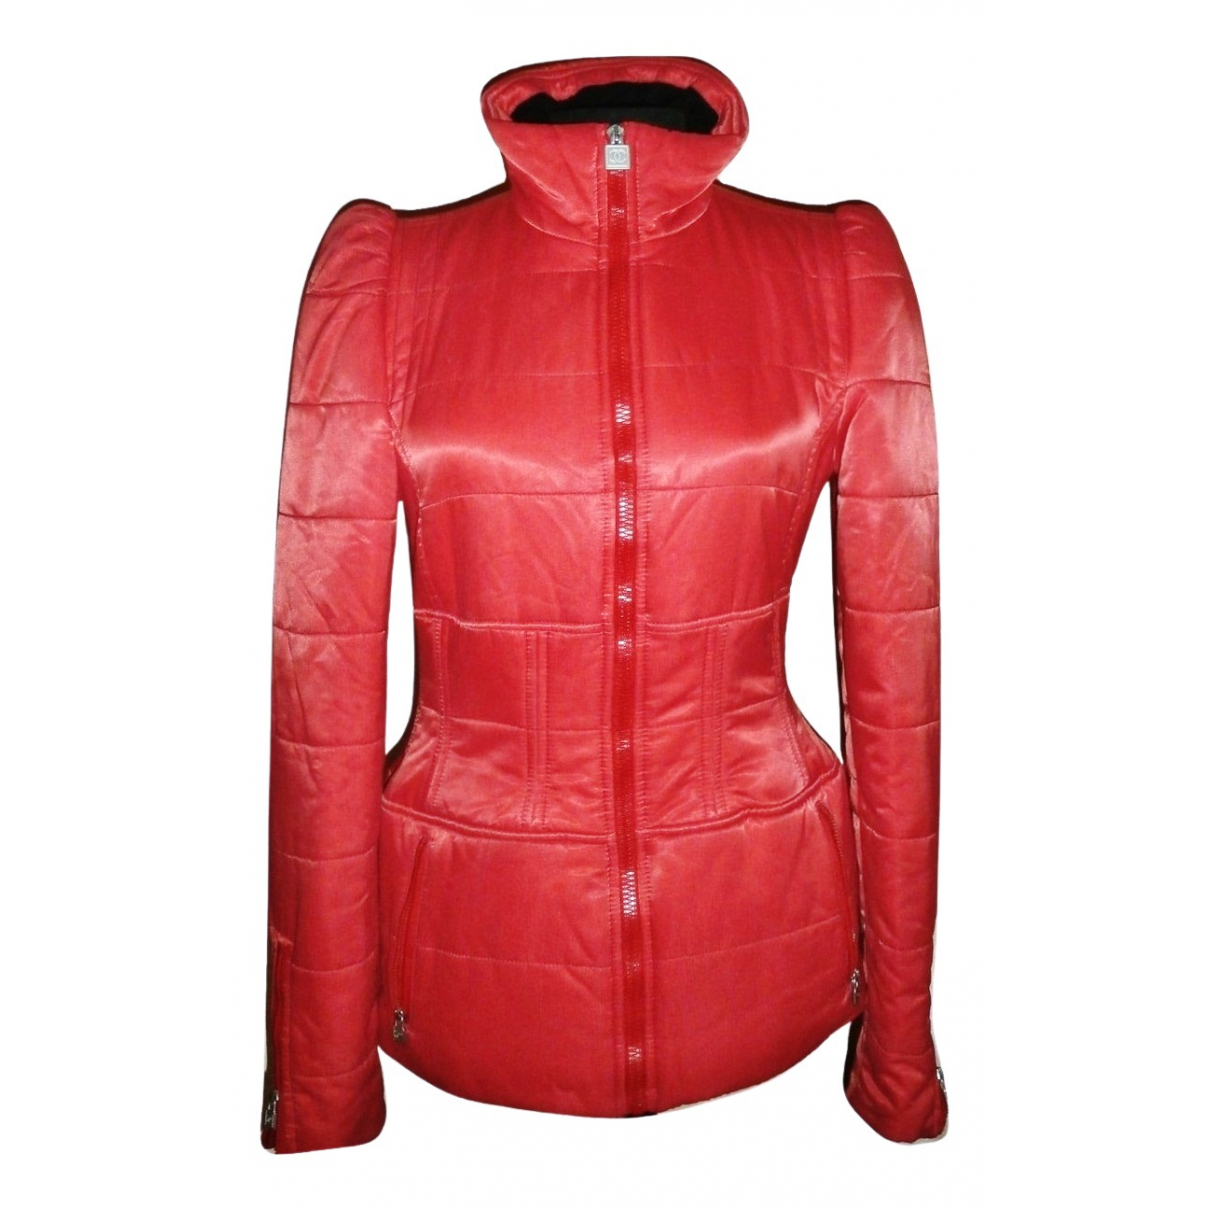 Chanel \N Red jacket for Women 38 FR